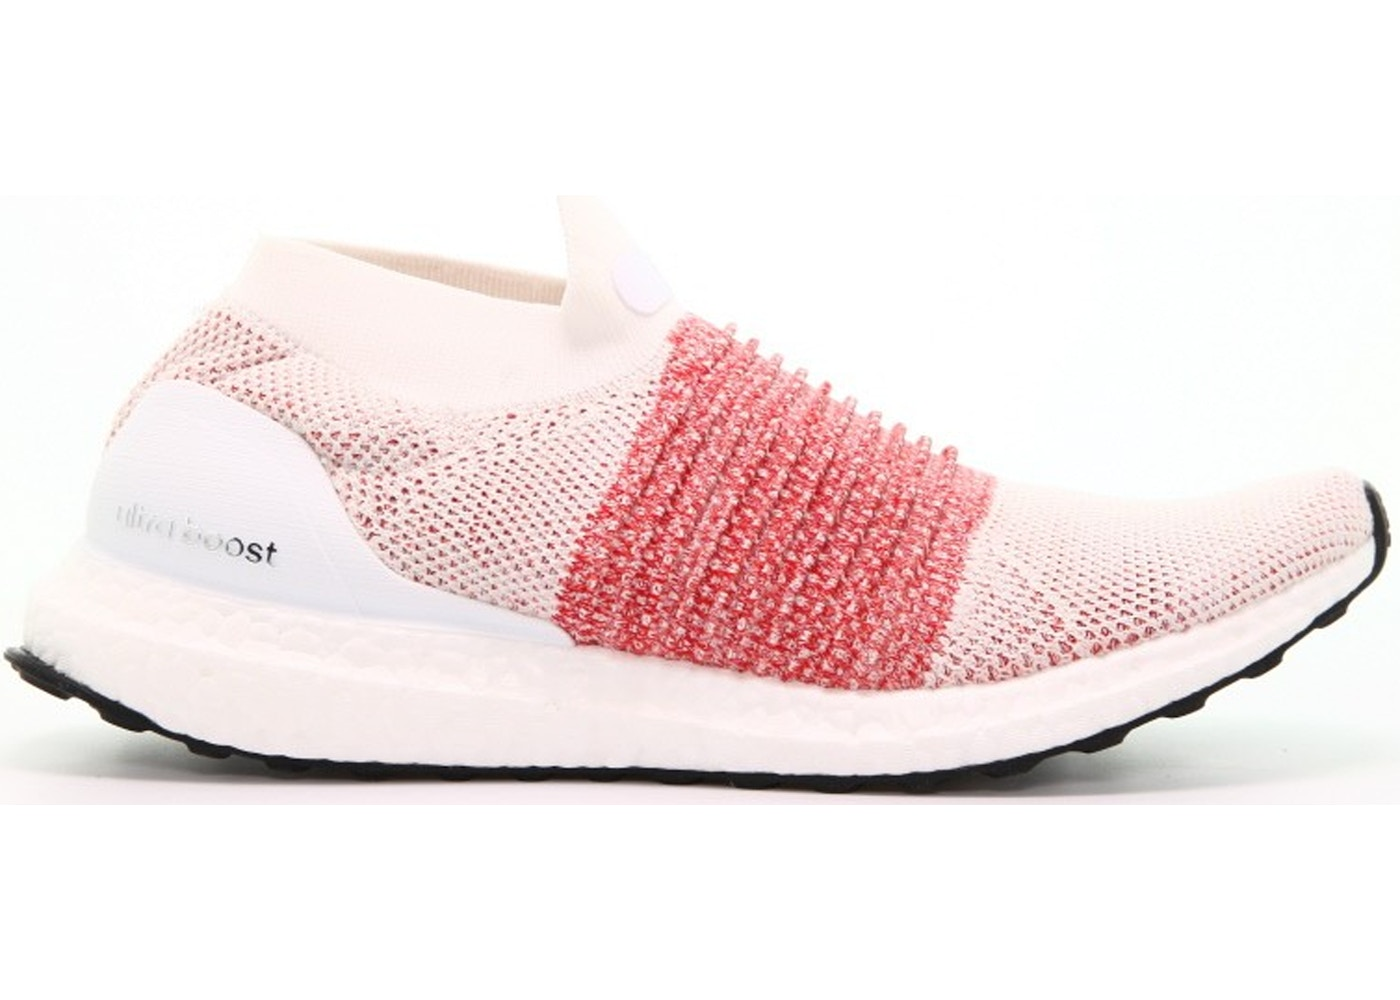 5f11f9493 adidas Ultra Boost Laceless White Scarlet - BB6136